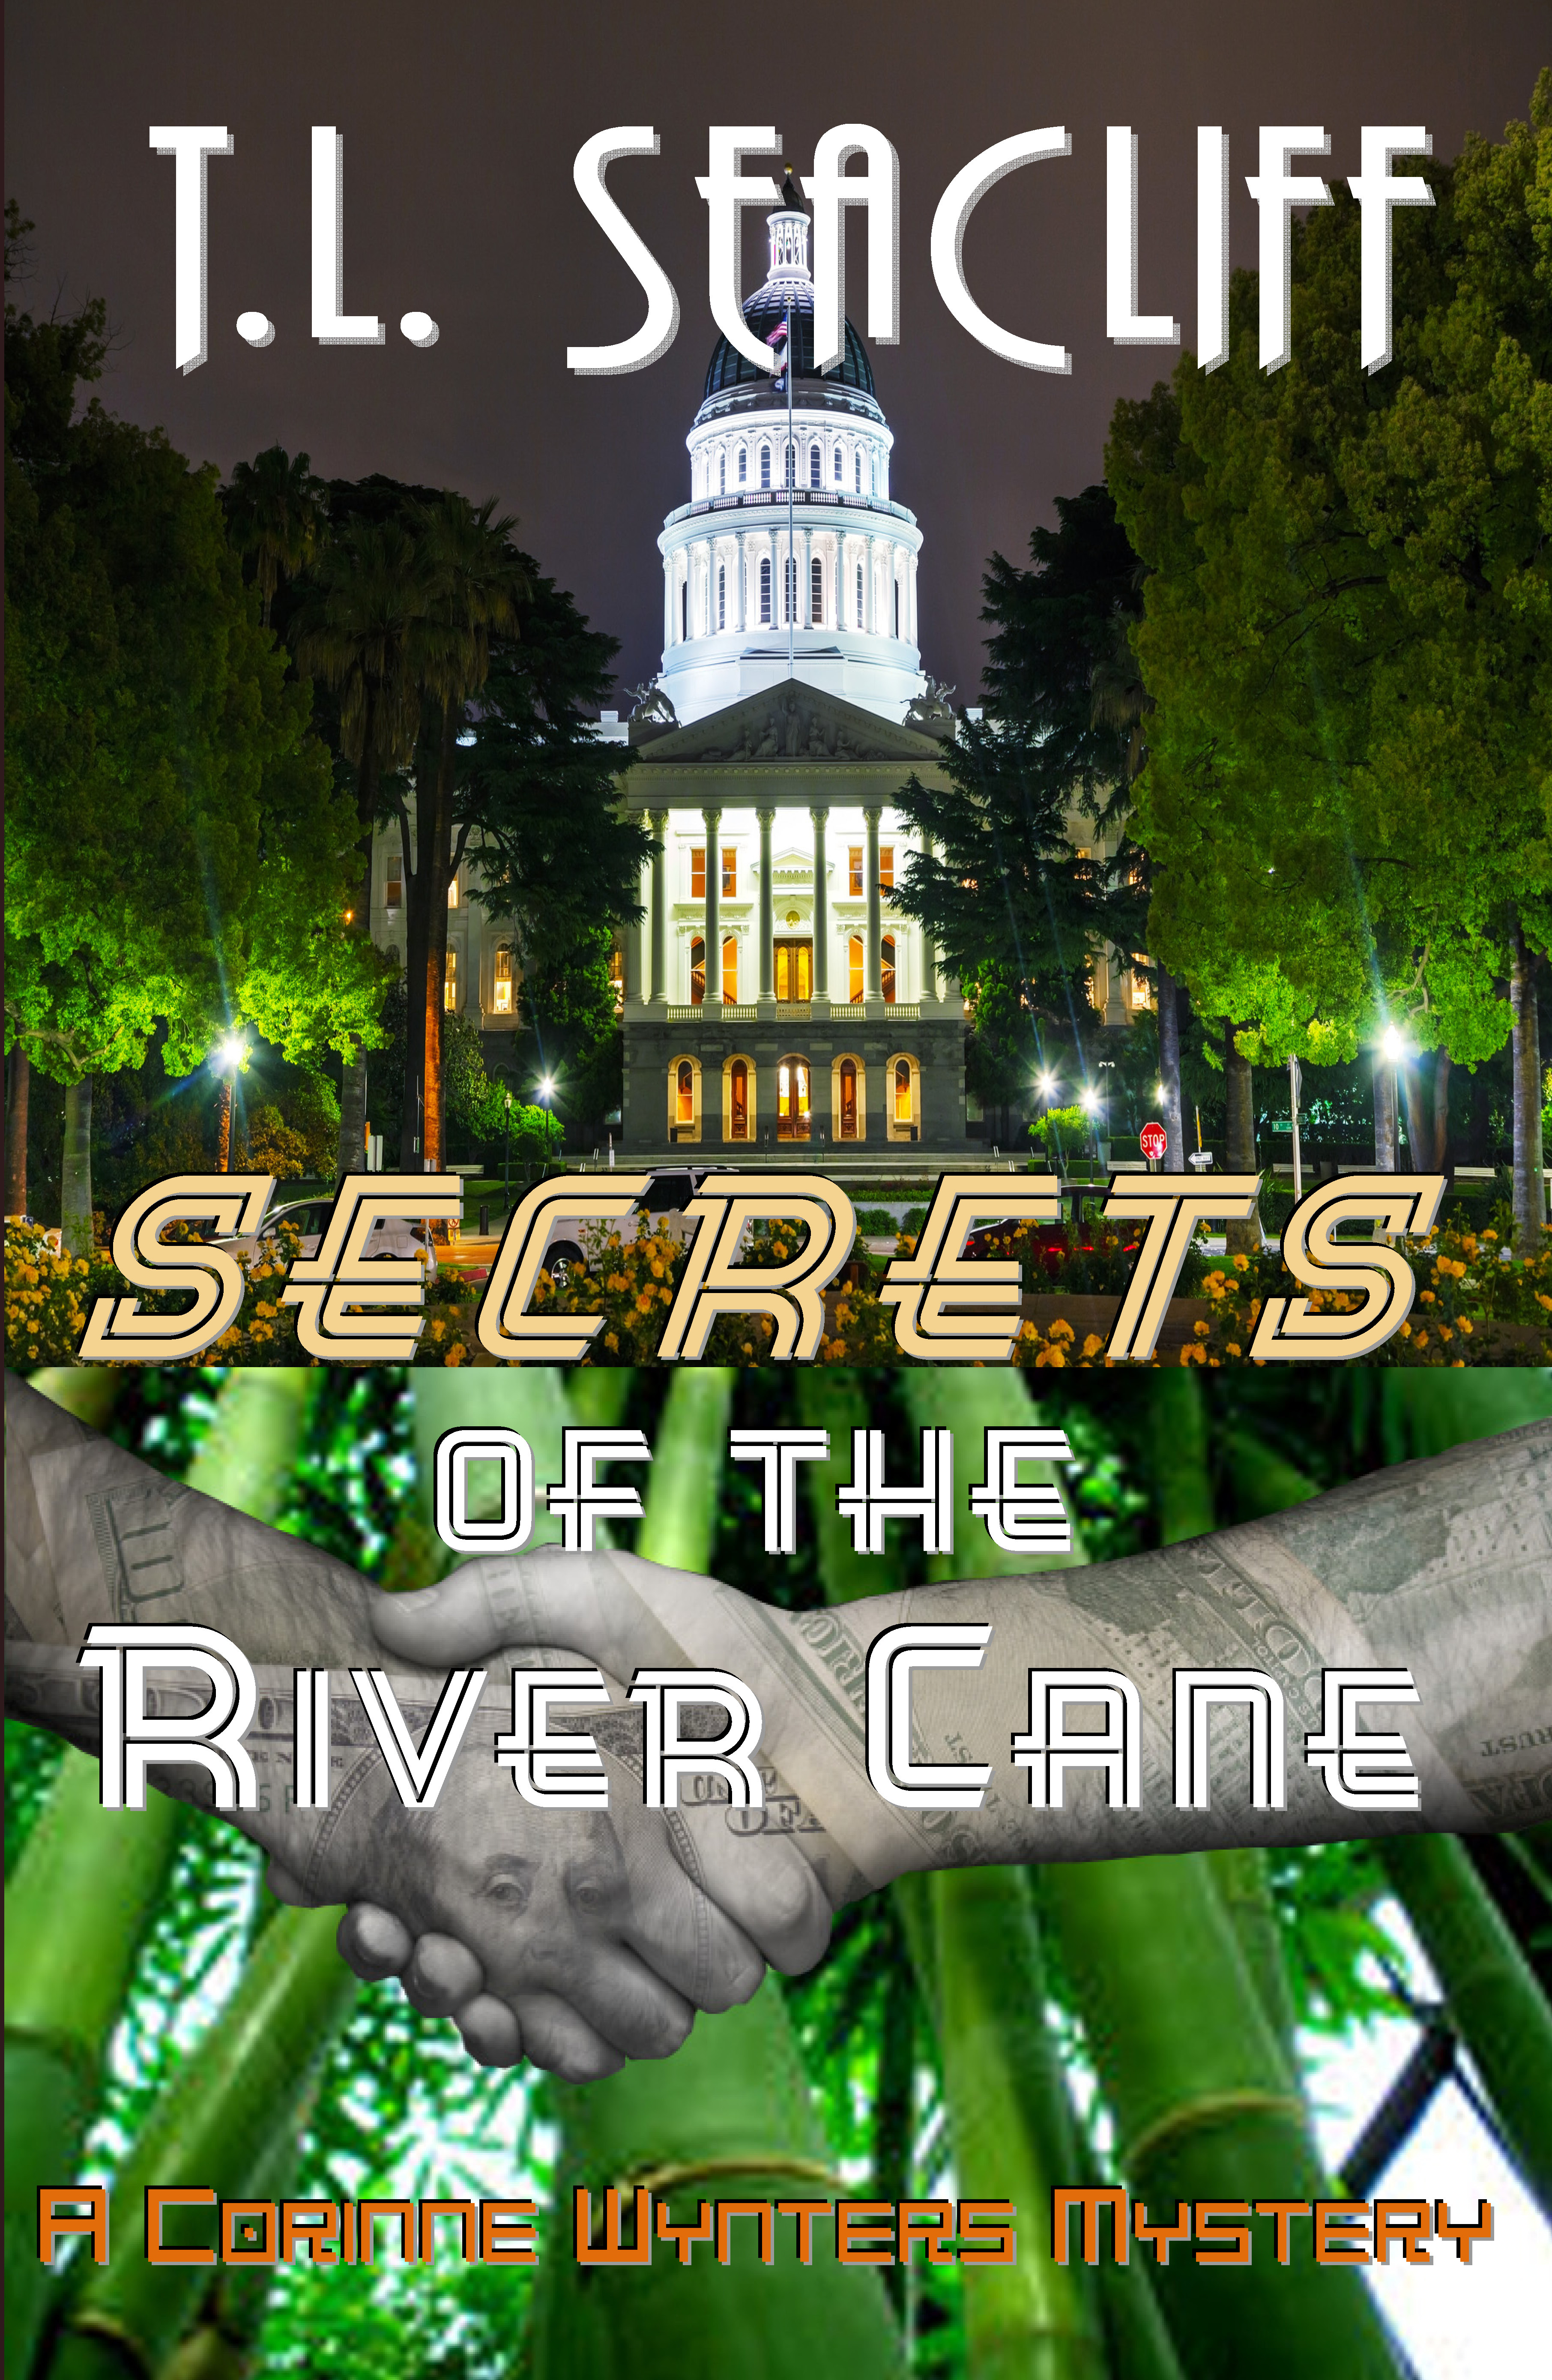 Secrets of the River Cane: A Corinne Wynters Mystery T.L. Seacliff